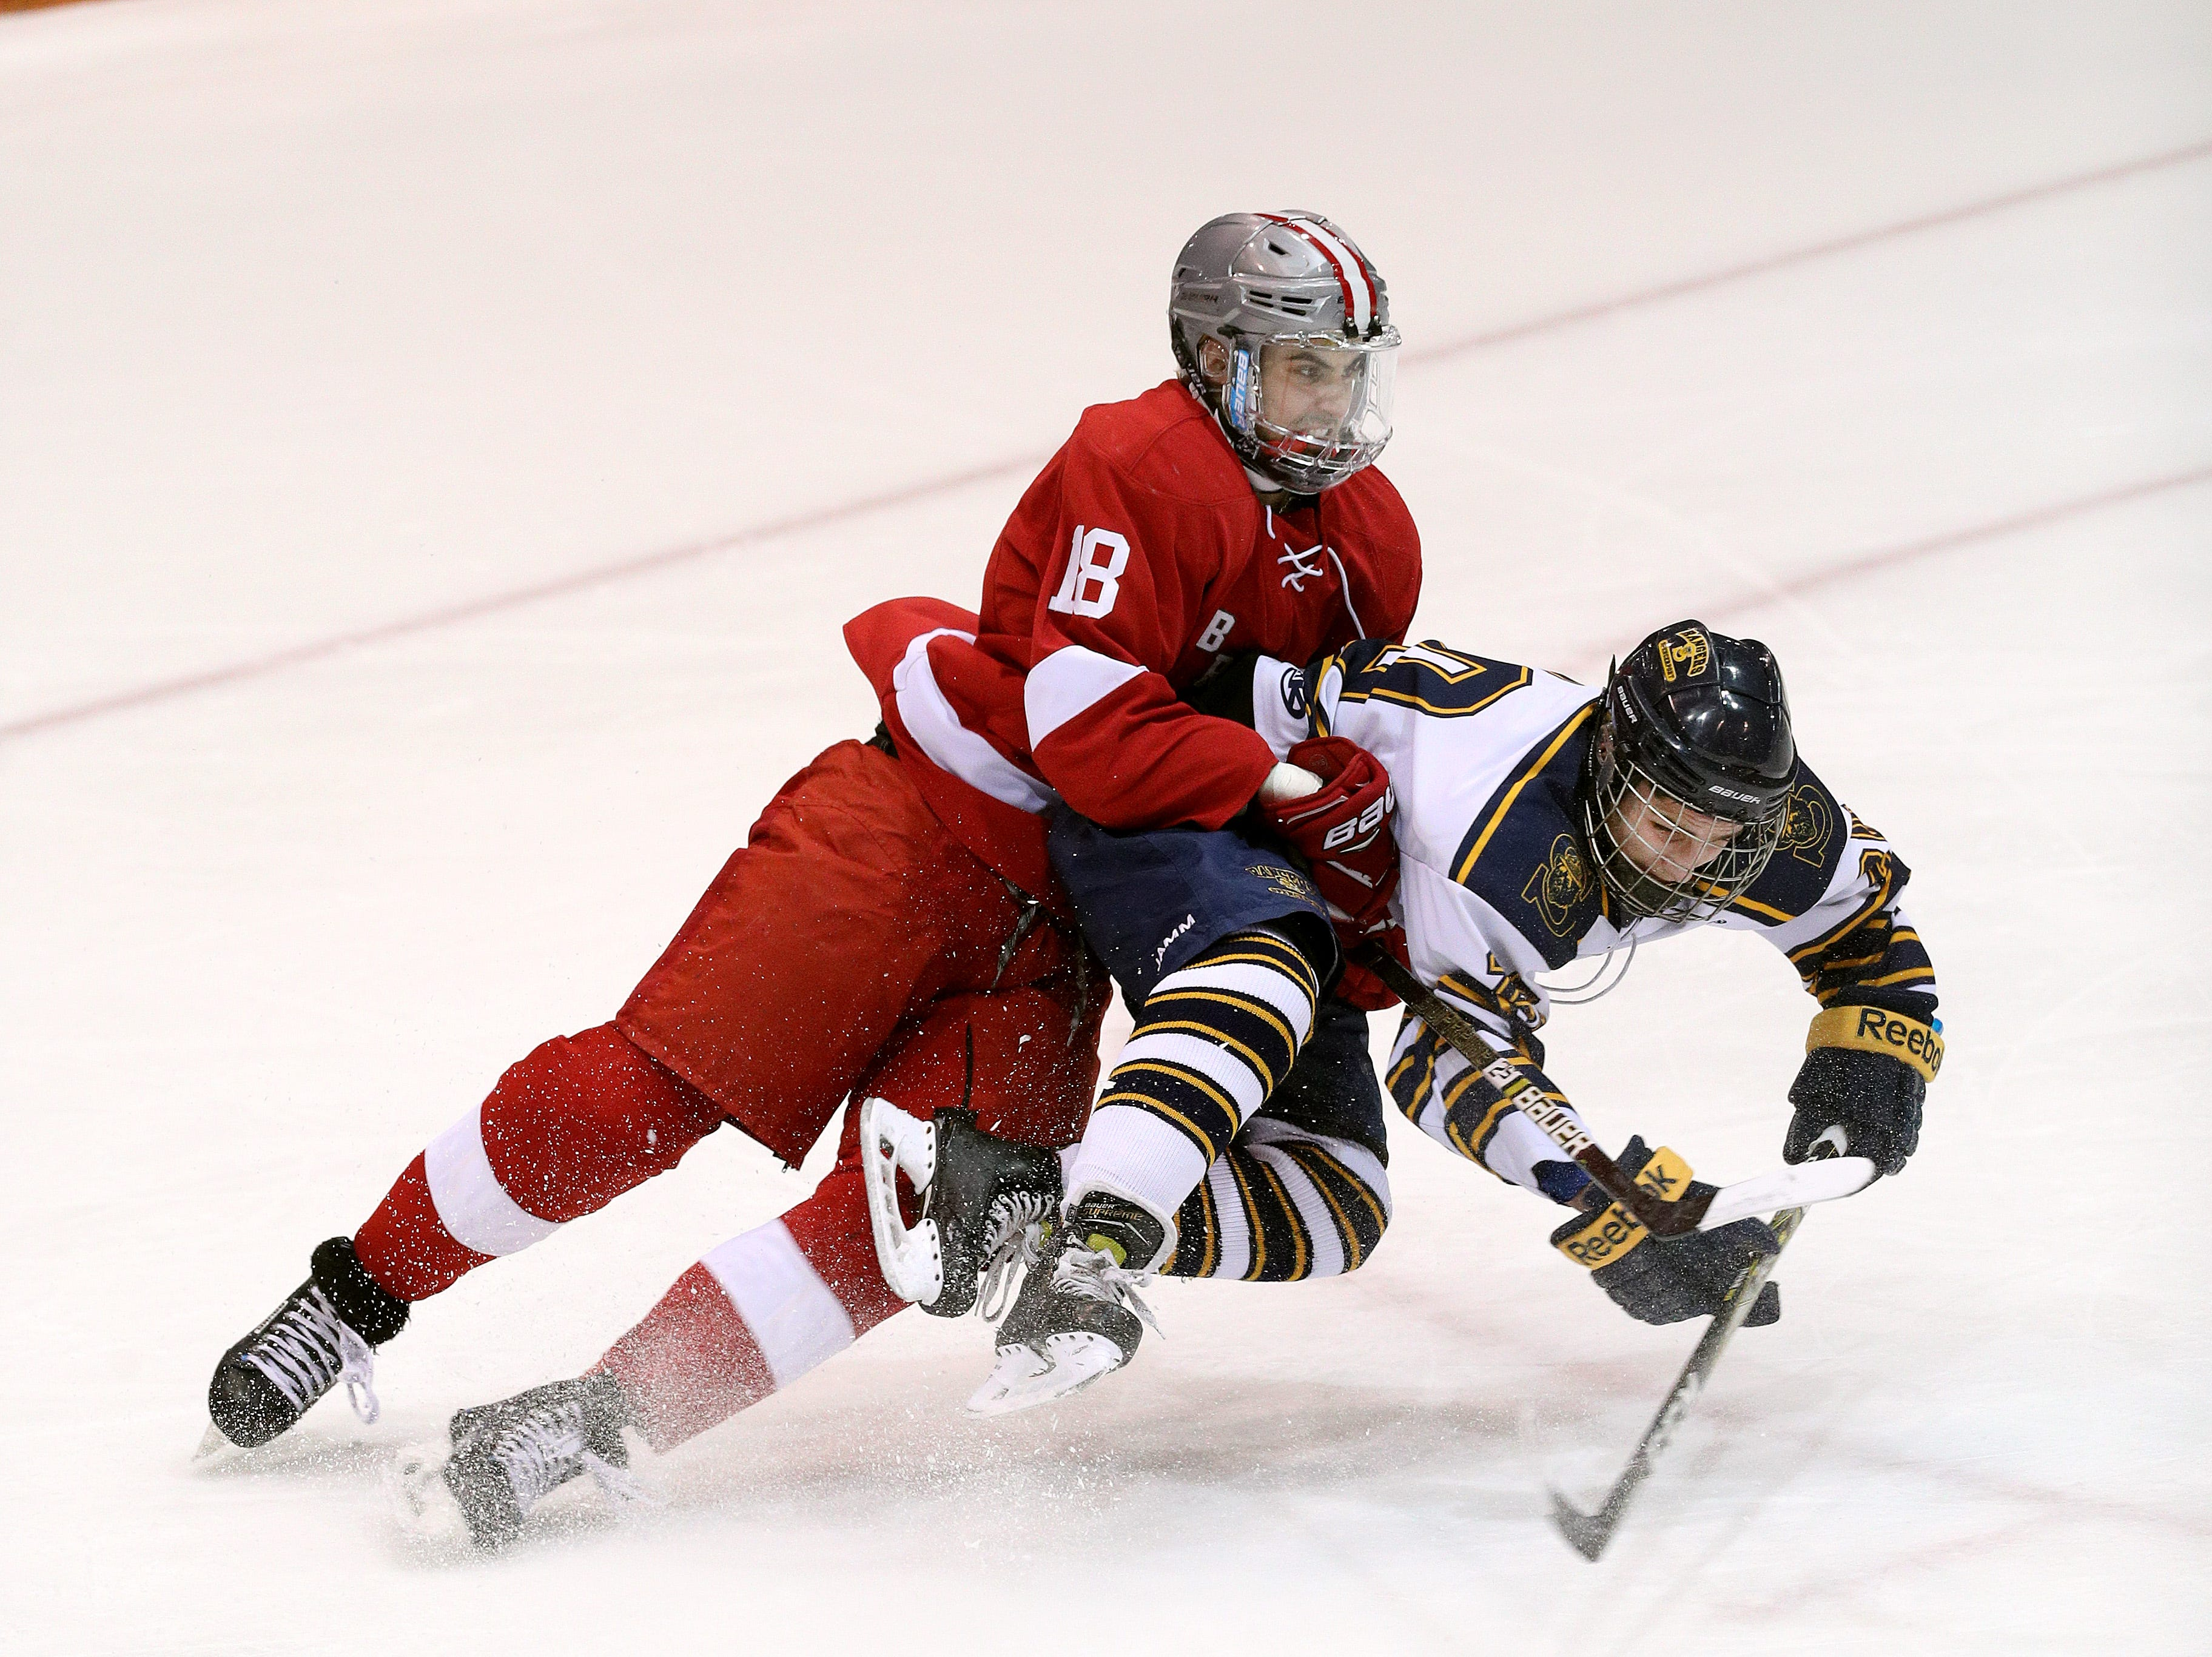 Spencerport's AJ Giannavola is taken down by Canandaigua's Michael Cichetti on a breakaway. Giannavola  missed on the ensuing penalty shot.